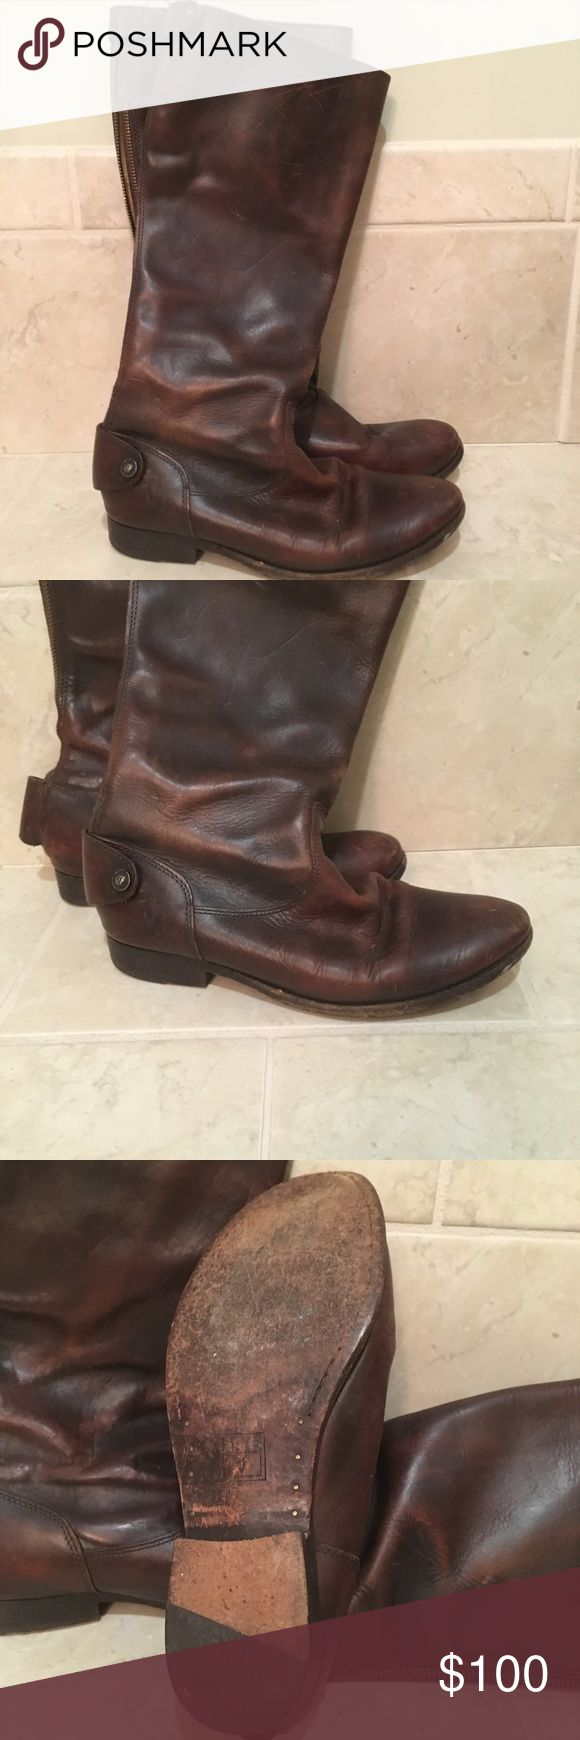 Frye Melissa Boot Size 7.5 Left ankle button is broken otherwise in great condition. Minor scratches from wear shown in photos. Size 7.5 Frye Shoes Winter & Rain Boots